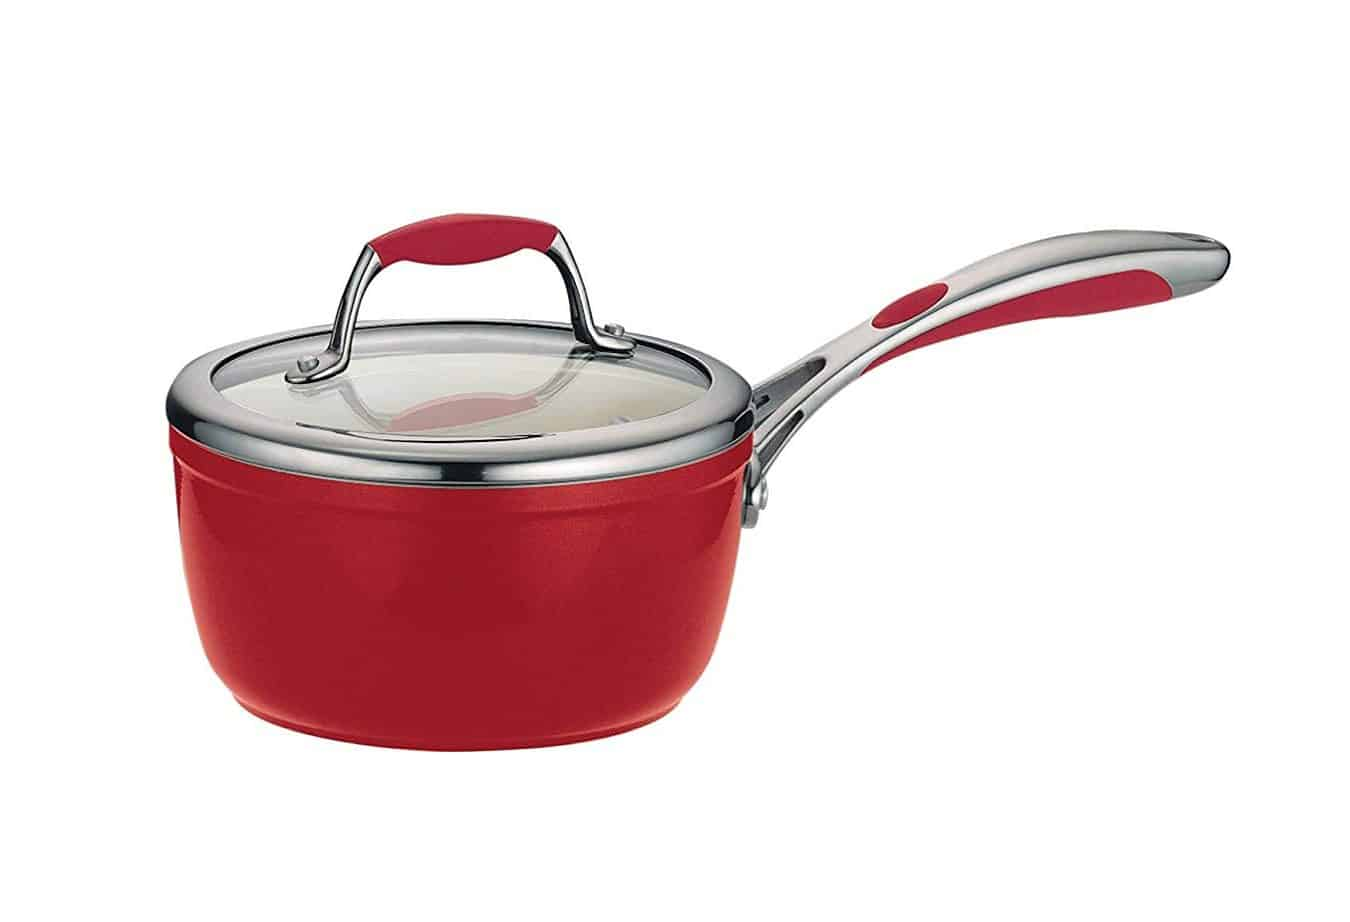 Sauce pan with features of ergonomic handle a stay-cool, soft-grip finish while the heat- and shatter-resistant tempered glass lid provides easy and safe cooking.